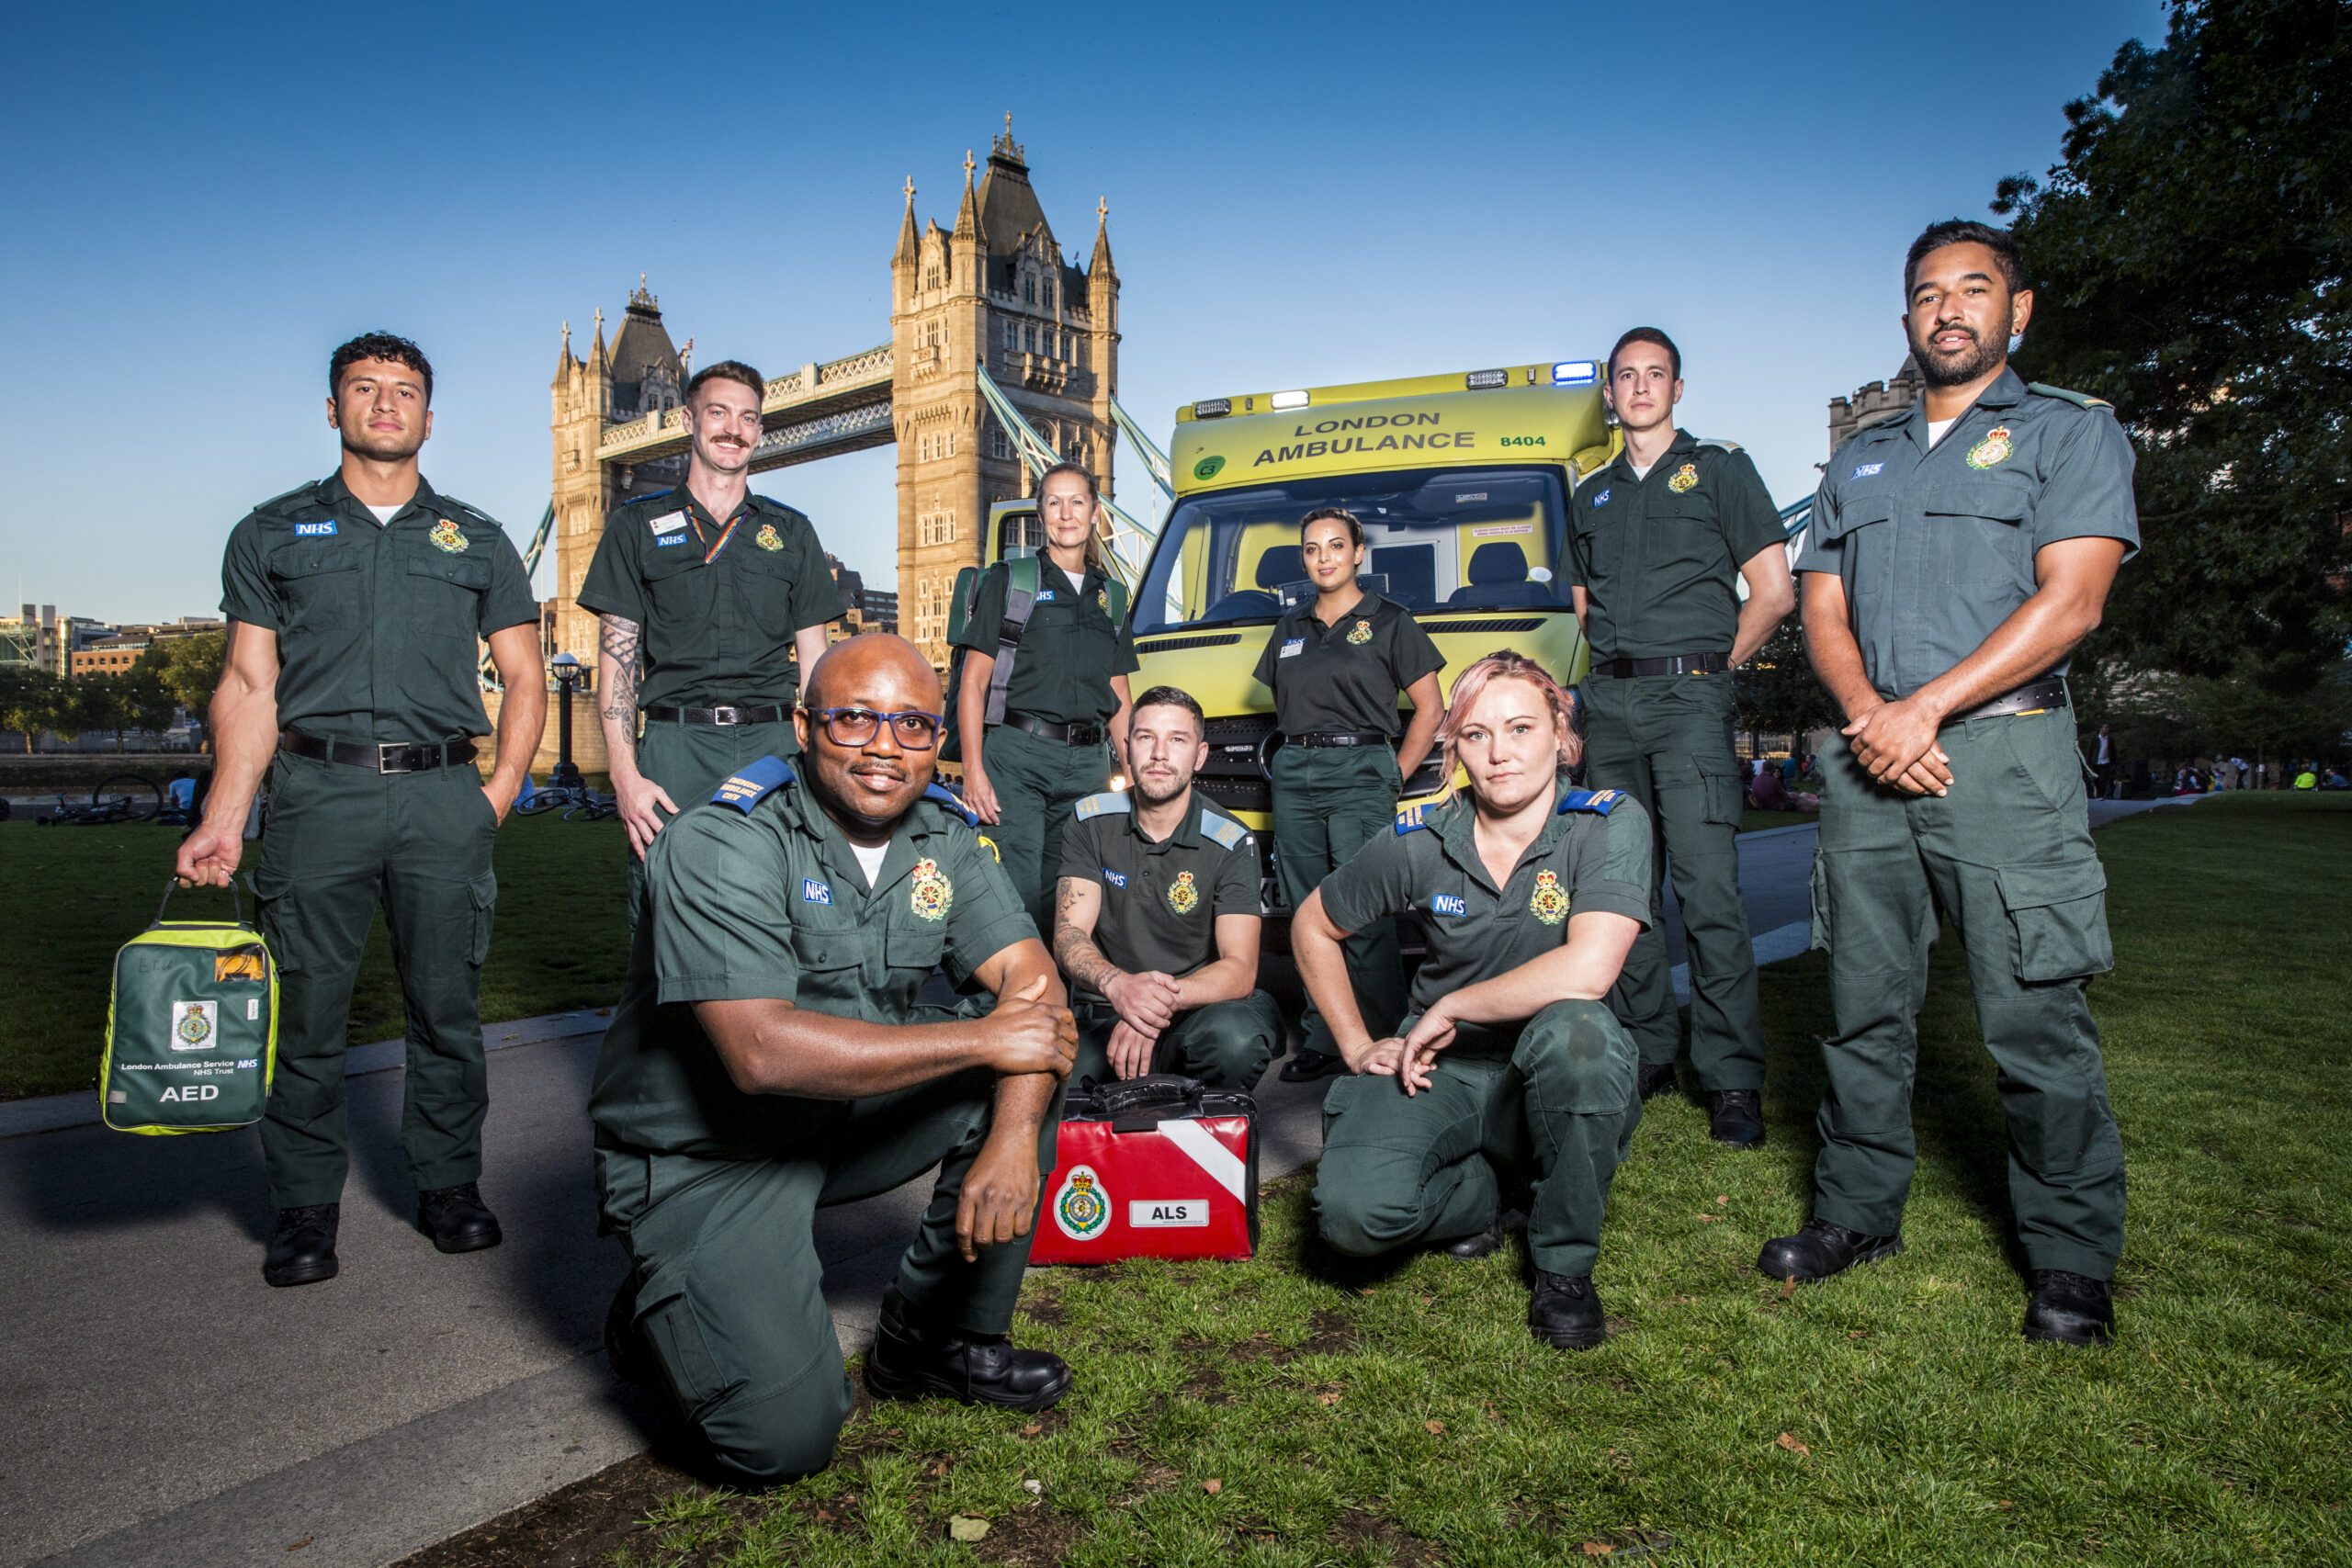 Group of ambulance staff in front of ambulance and Tower Bridge